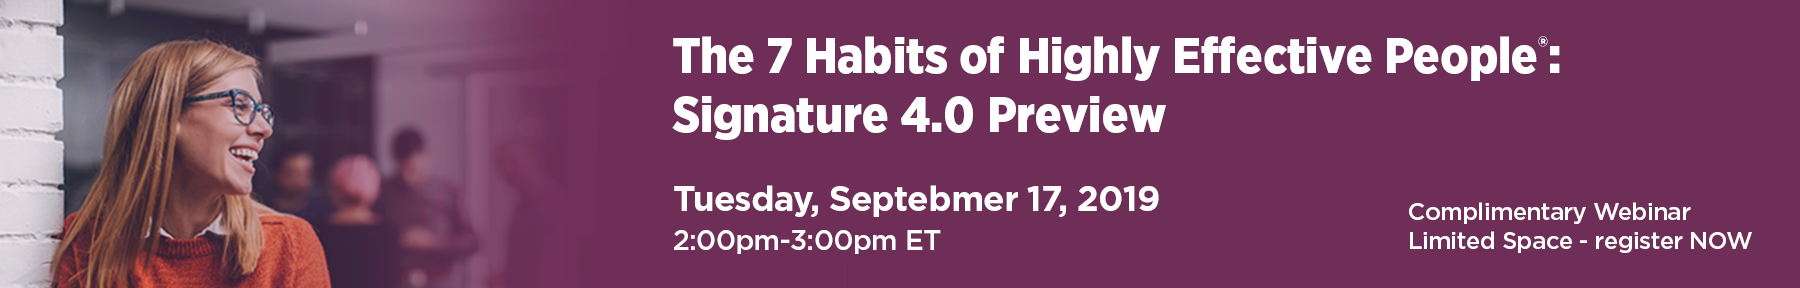 register for the 7 Habits preview webinar